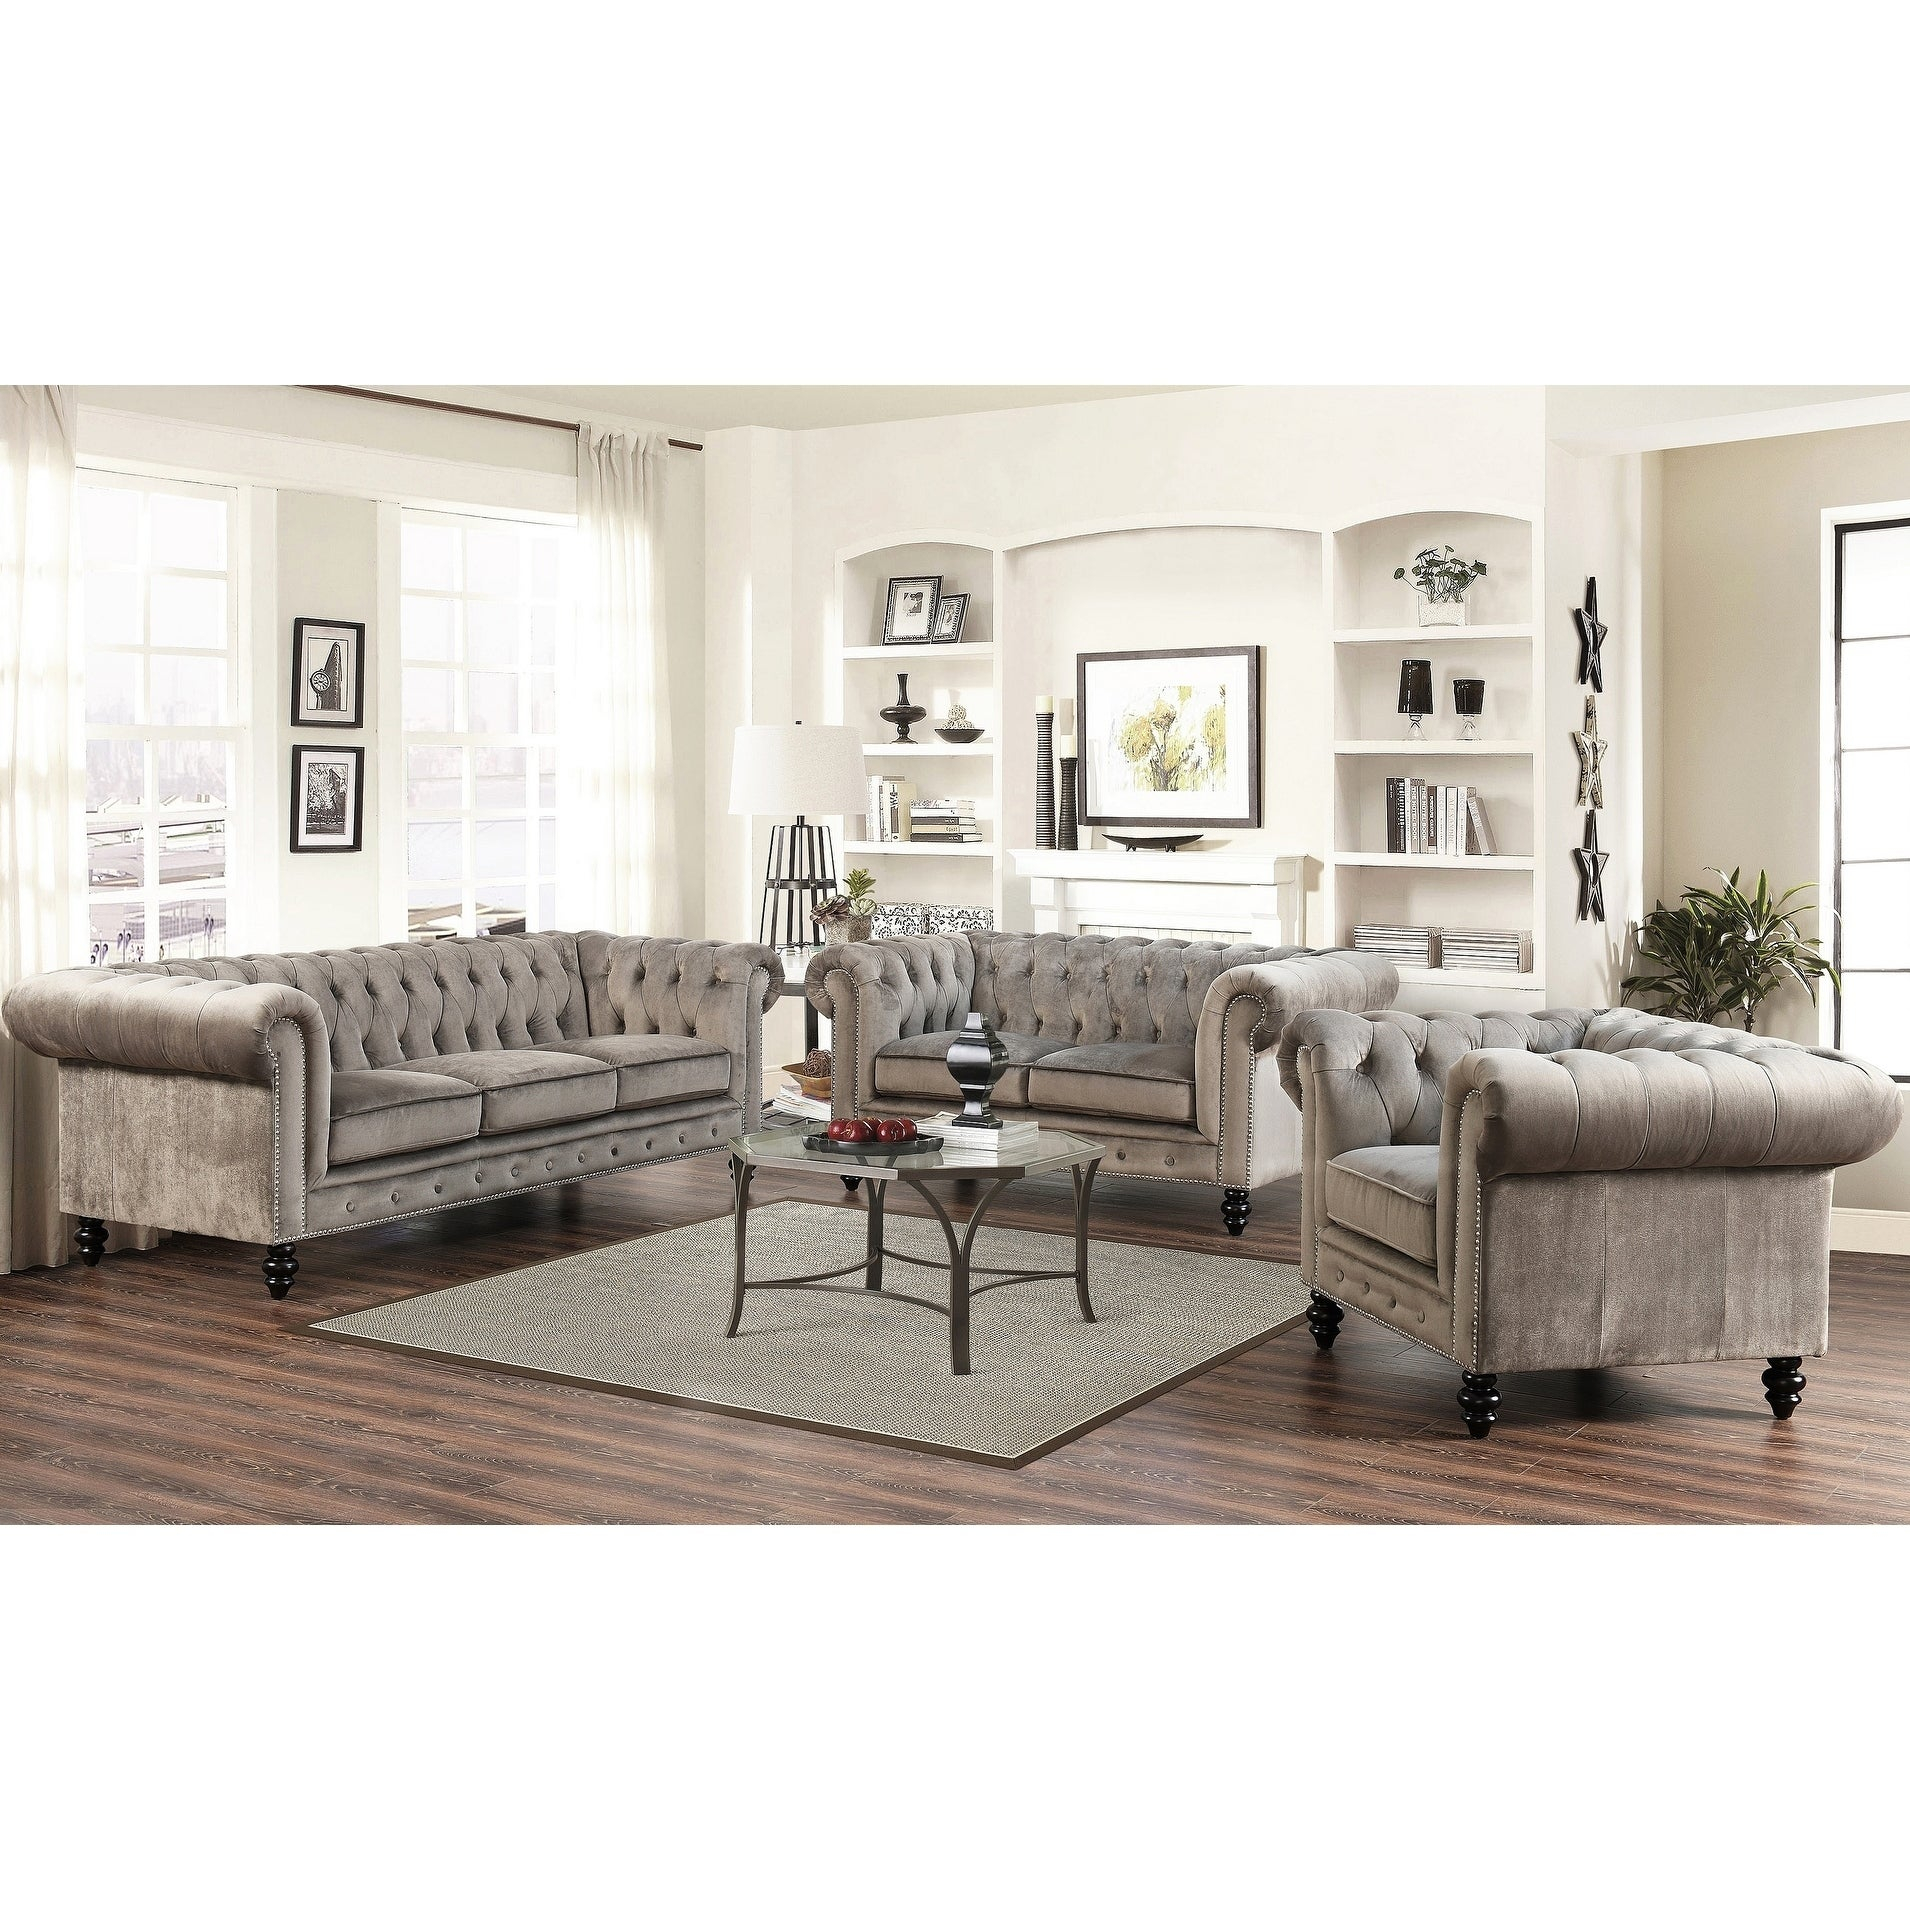 Gracewood Hollow Dib Grey Velvet 3 Piece Living Room Set throughout 12 Awesome Concepts of How to Improve Living Room Set 3 Piece